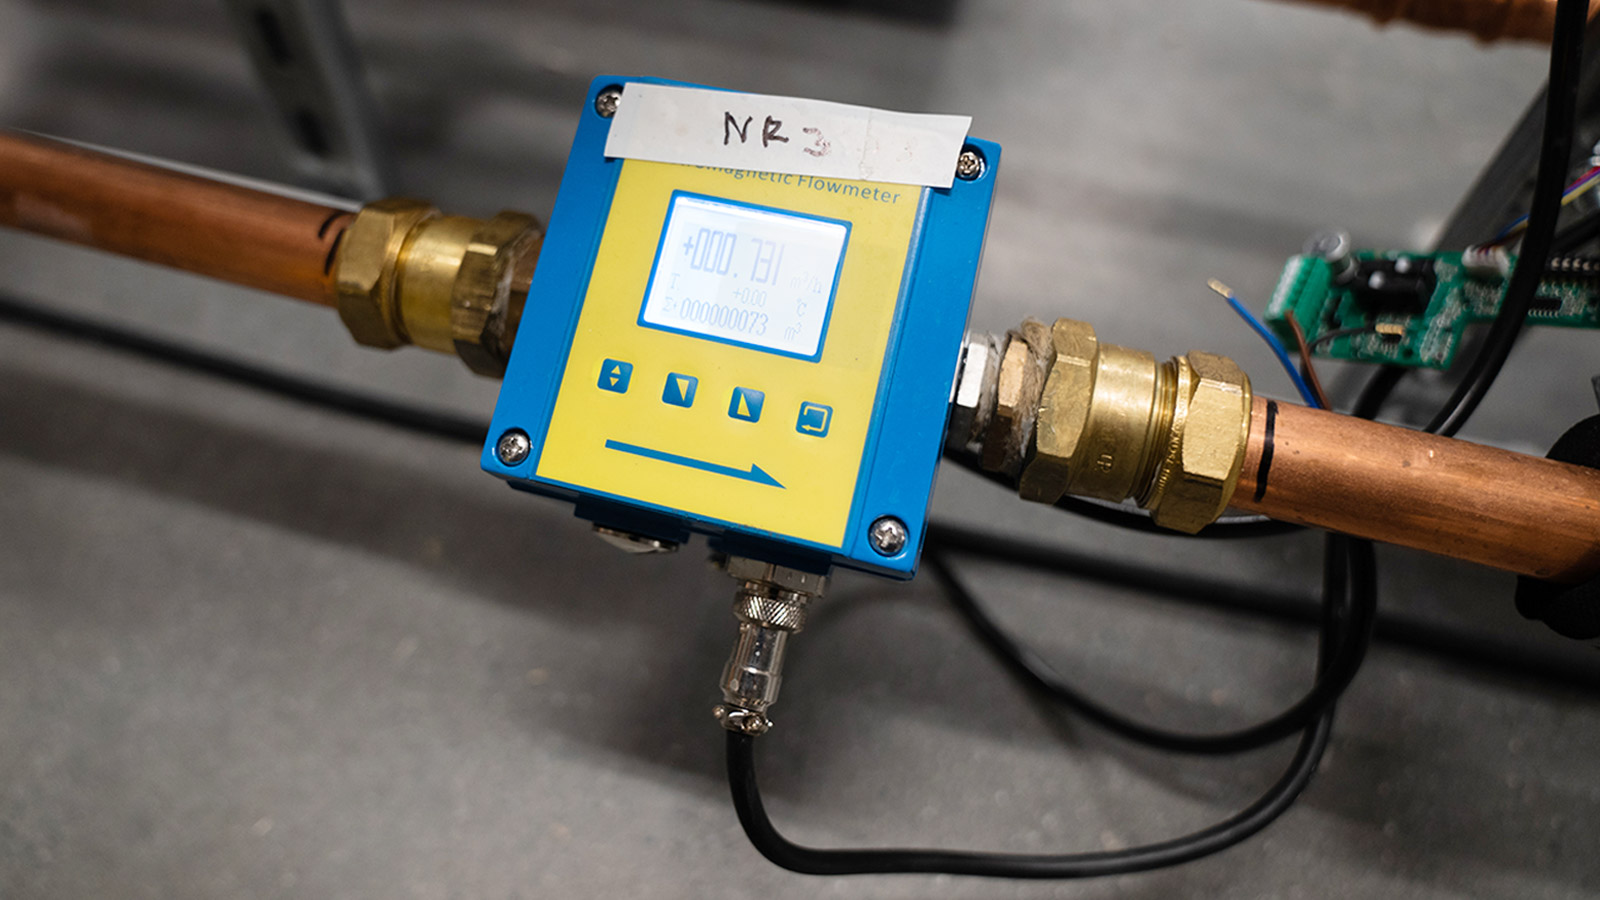 Borehole measurement device